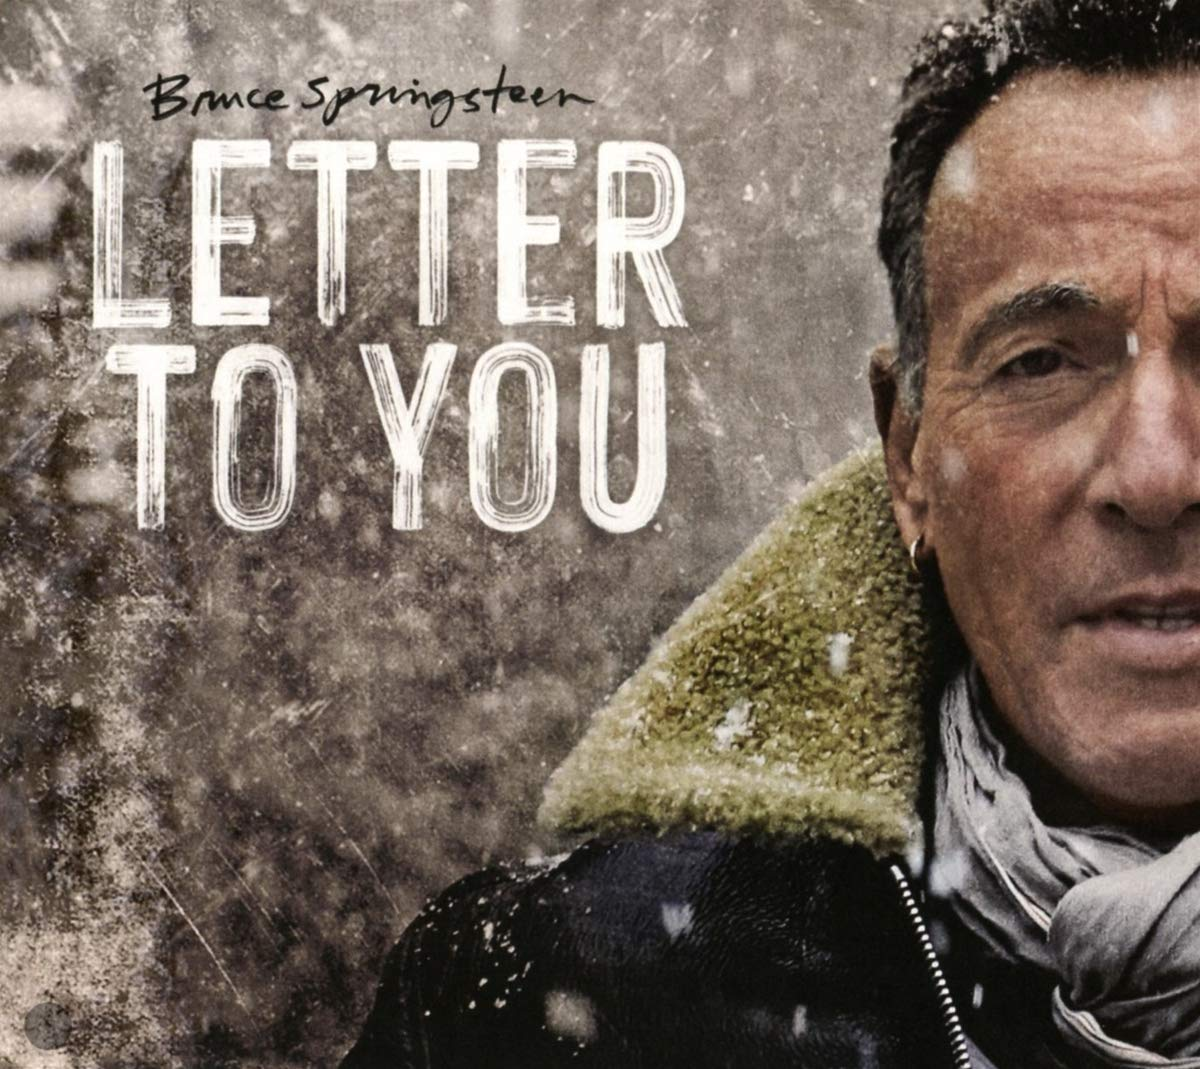 Buy Bruce Springsteen: Letter to You New or Used via Amazon